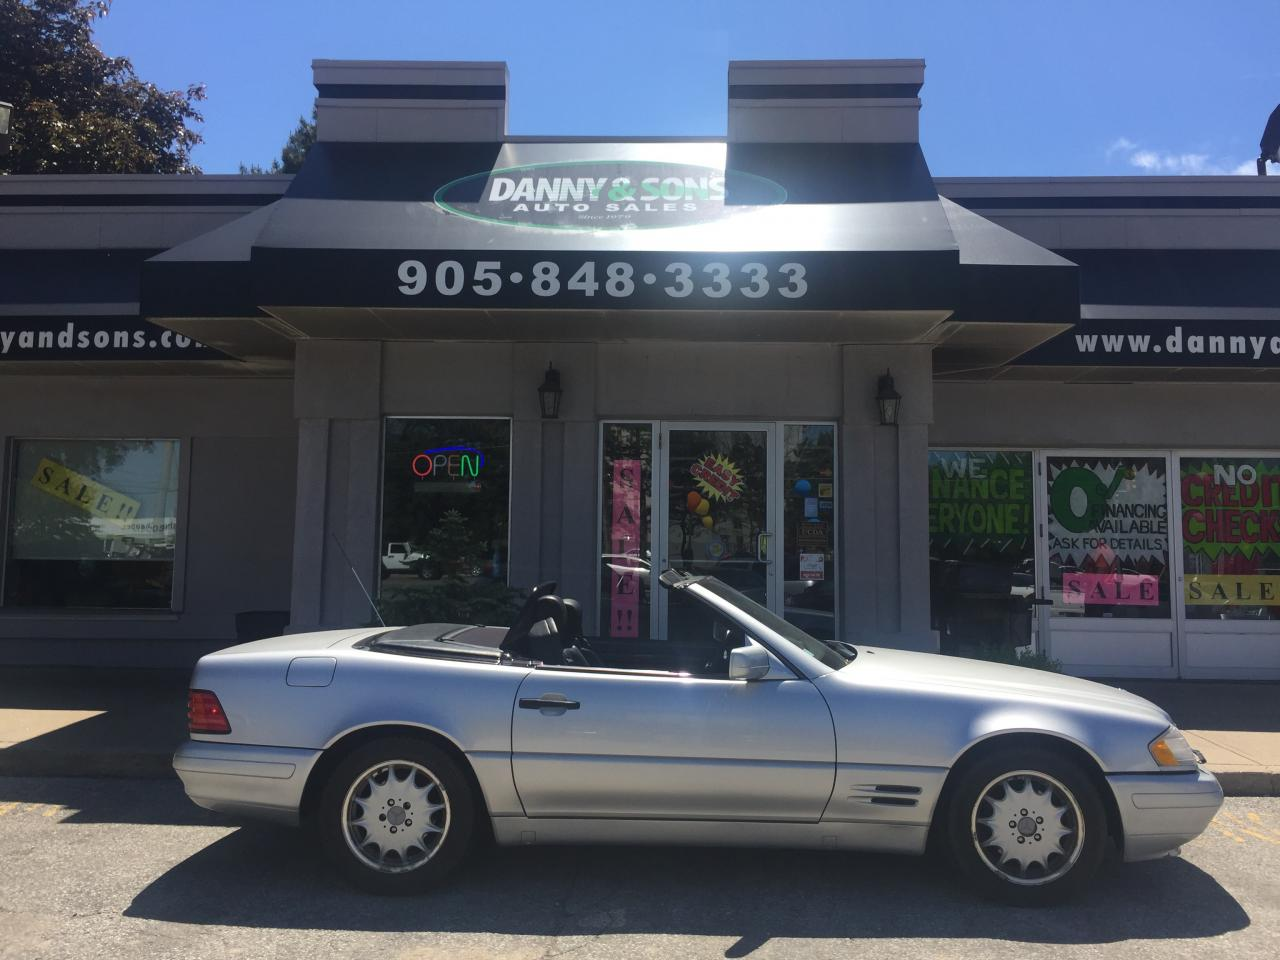 Used 1998 mercedes benz sl500 for sale in mississauga for Used mercedes benz sl500 for sale